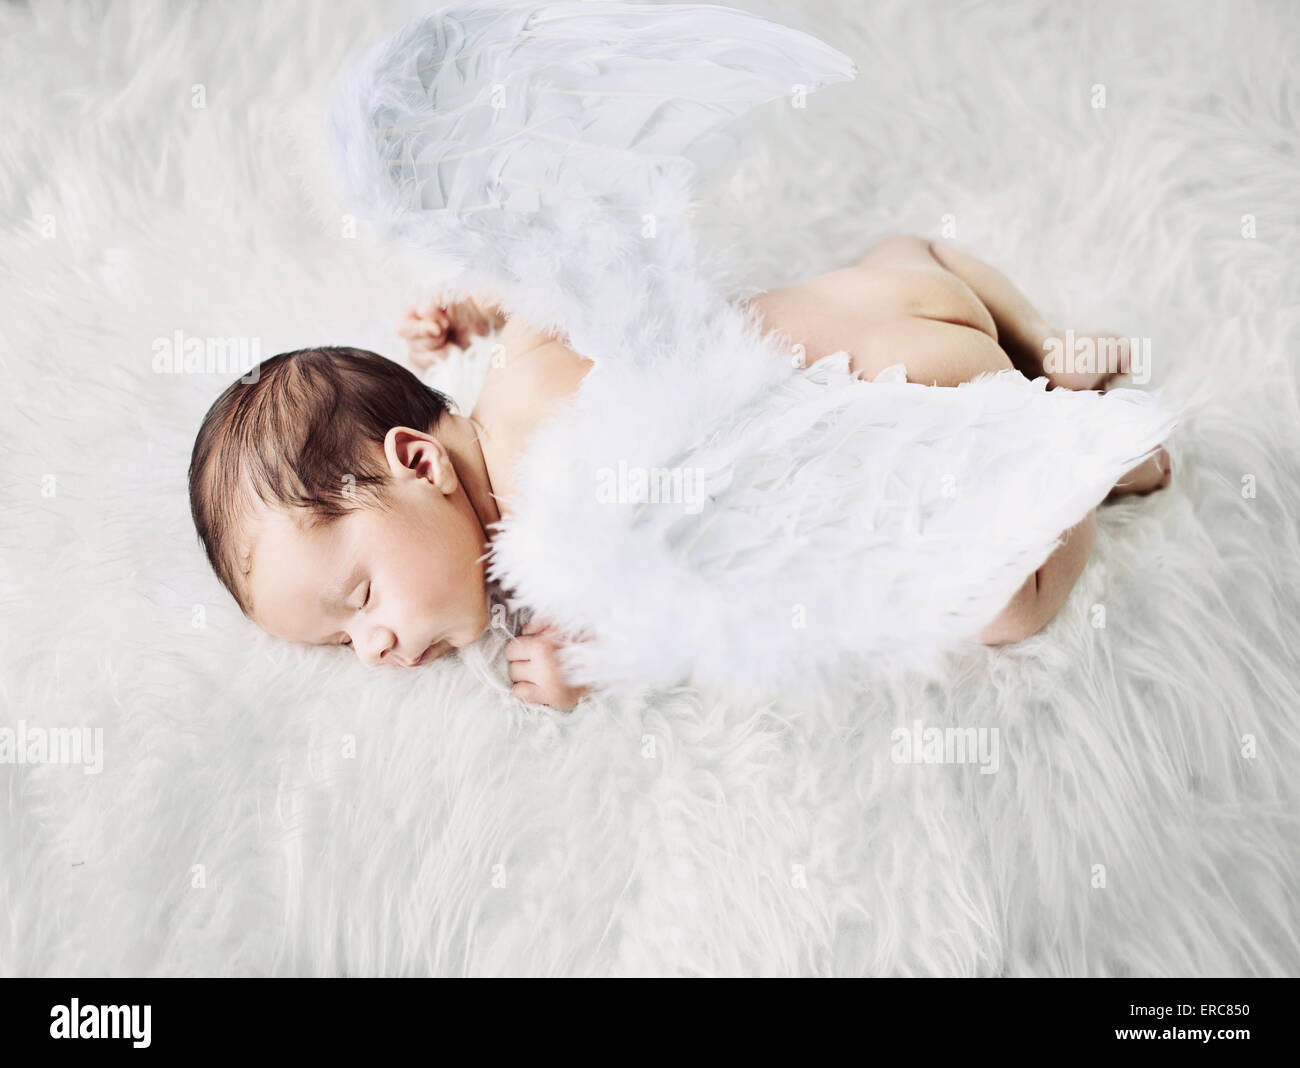 Cute little angel during a short nap - Stock Image